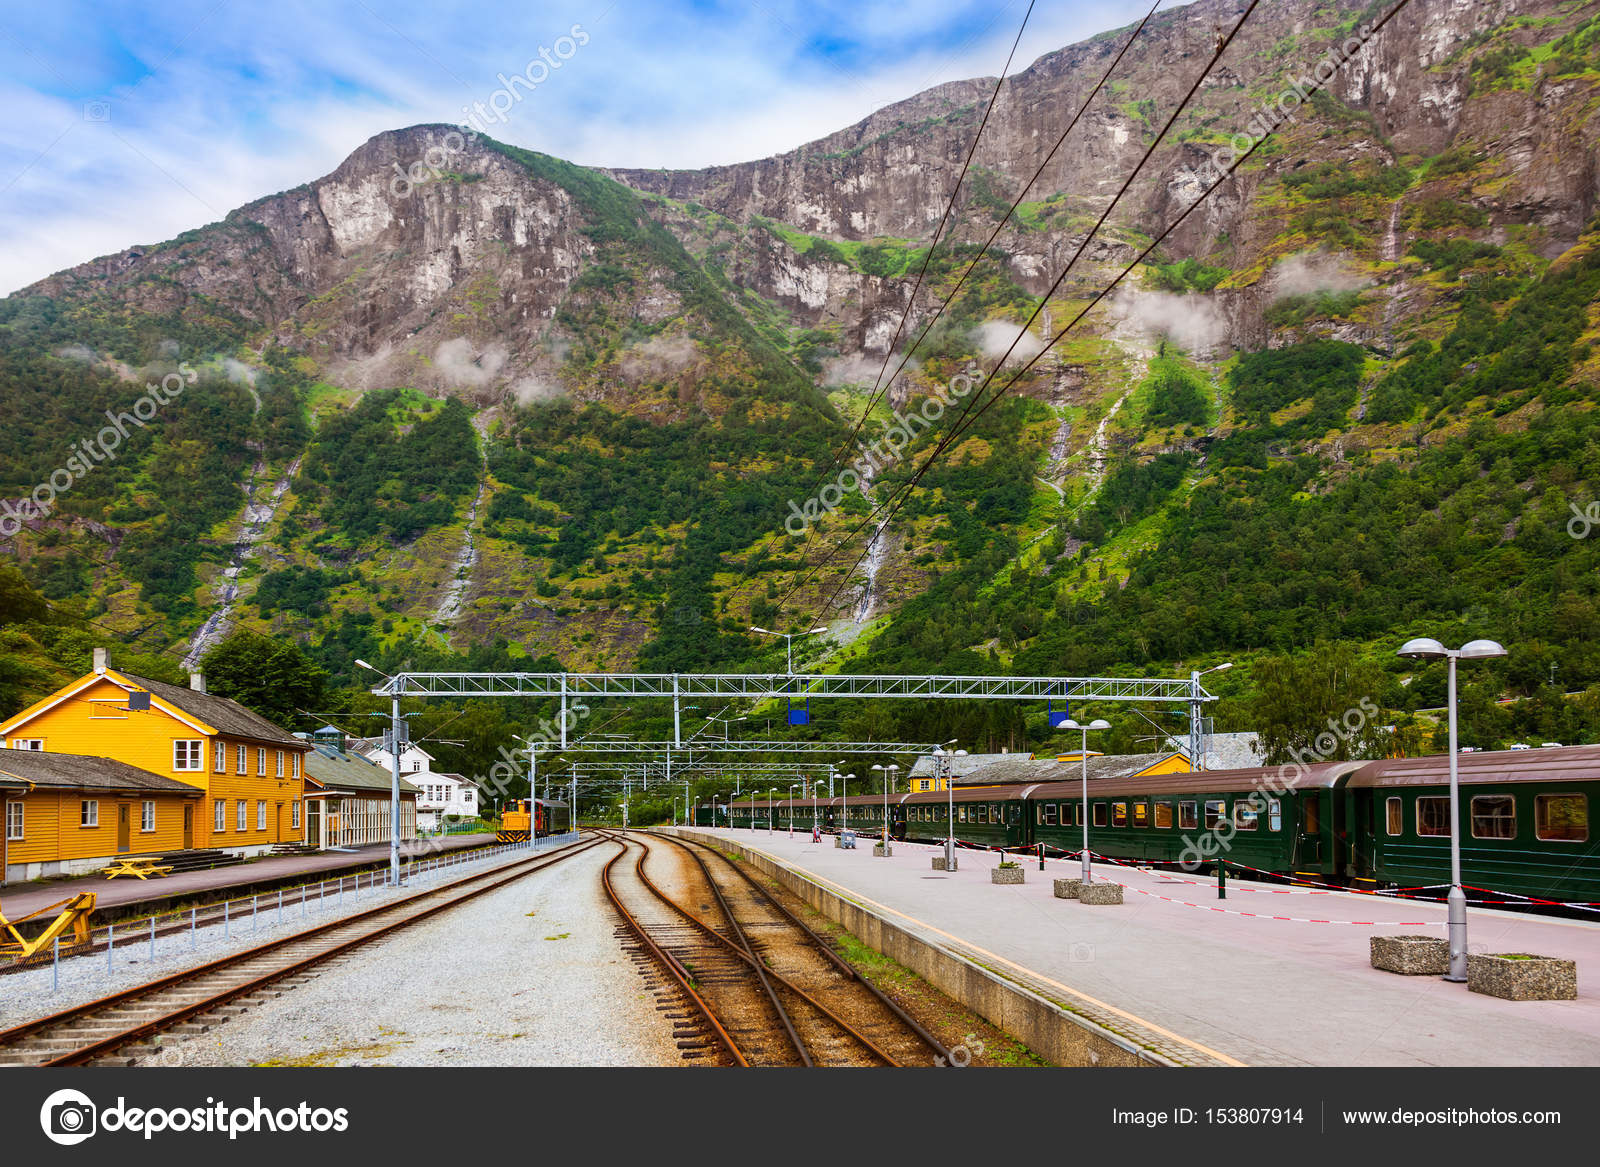 Norway Train Train In Flam Norway Stock Photo Violin 153807914